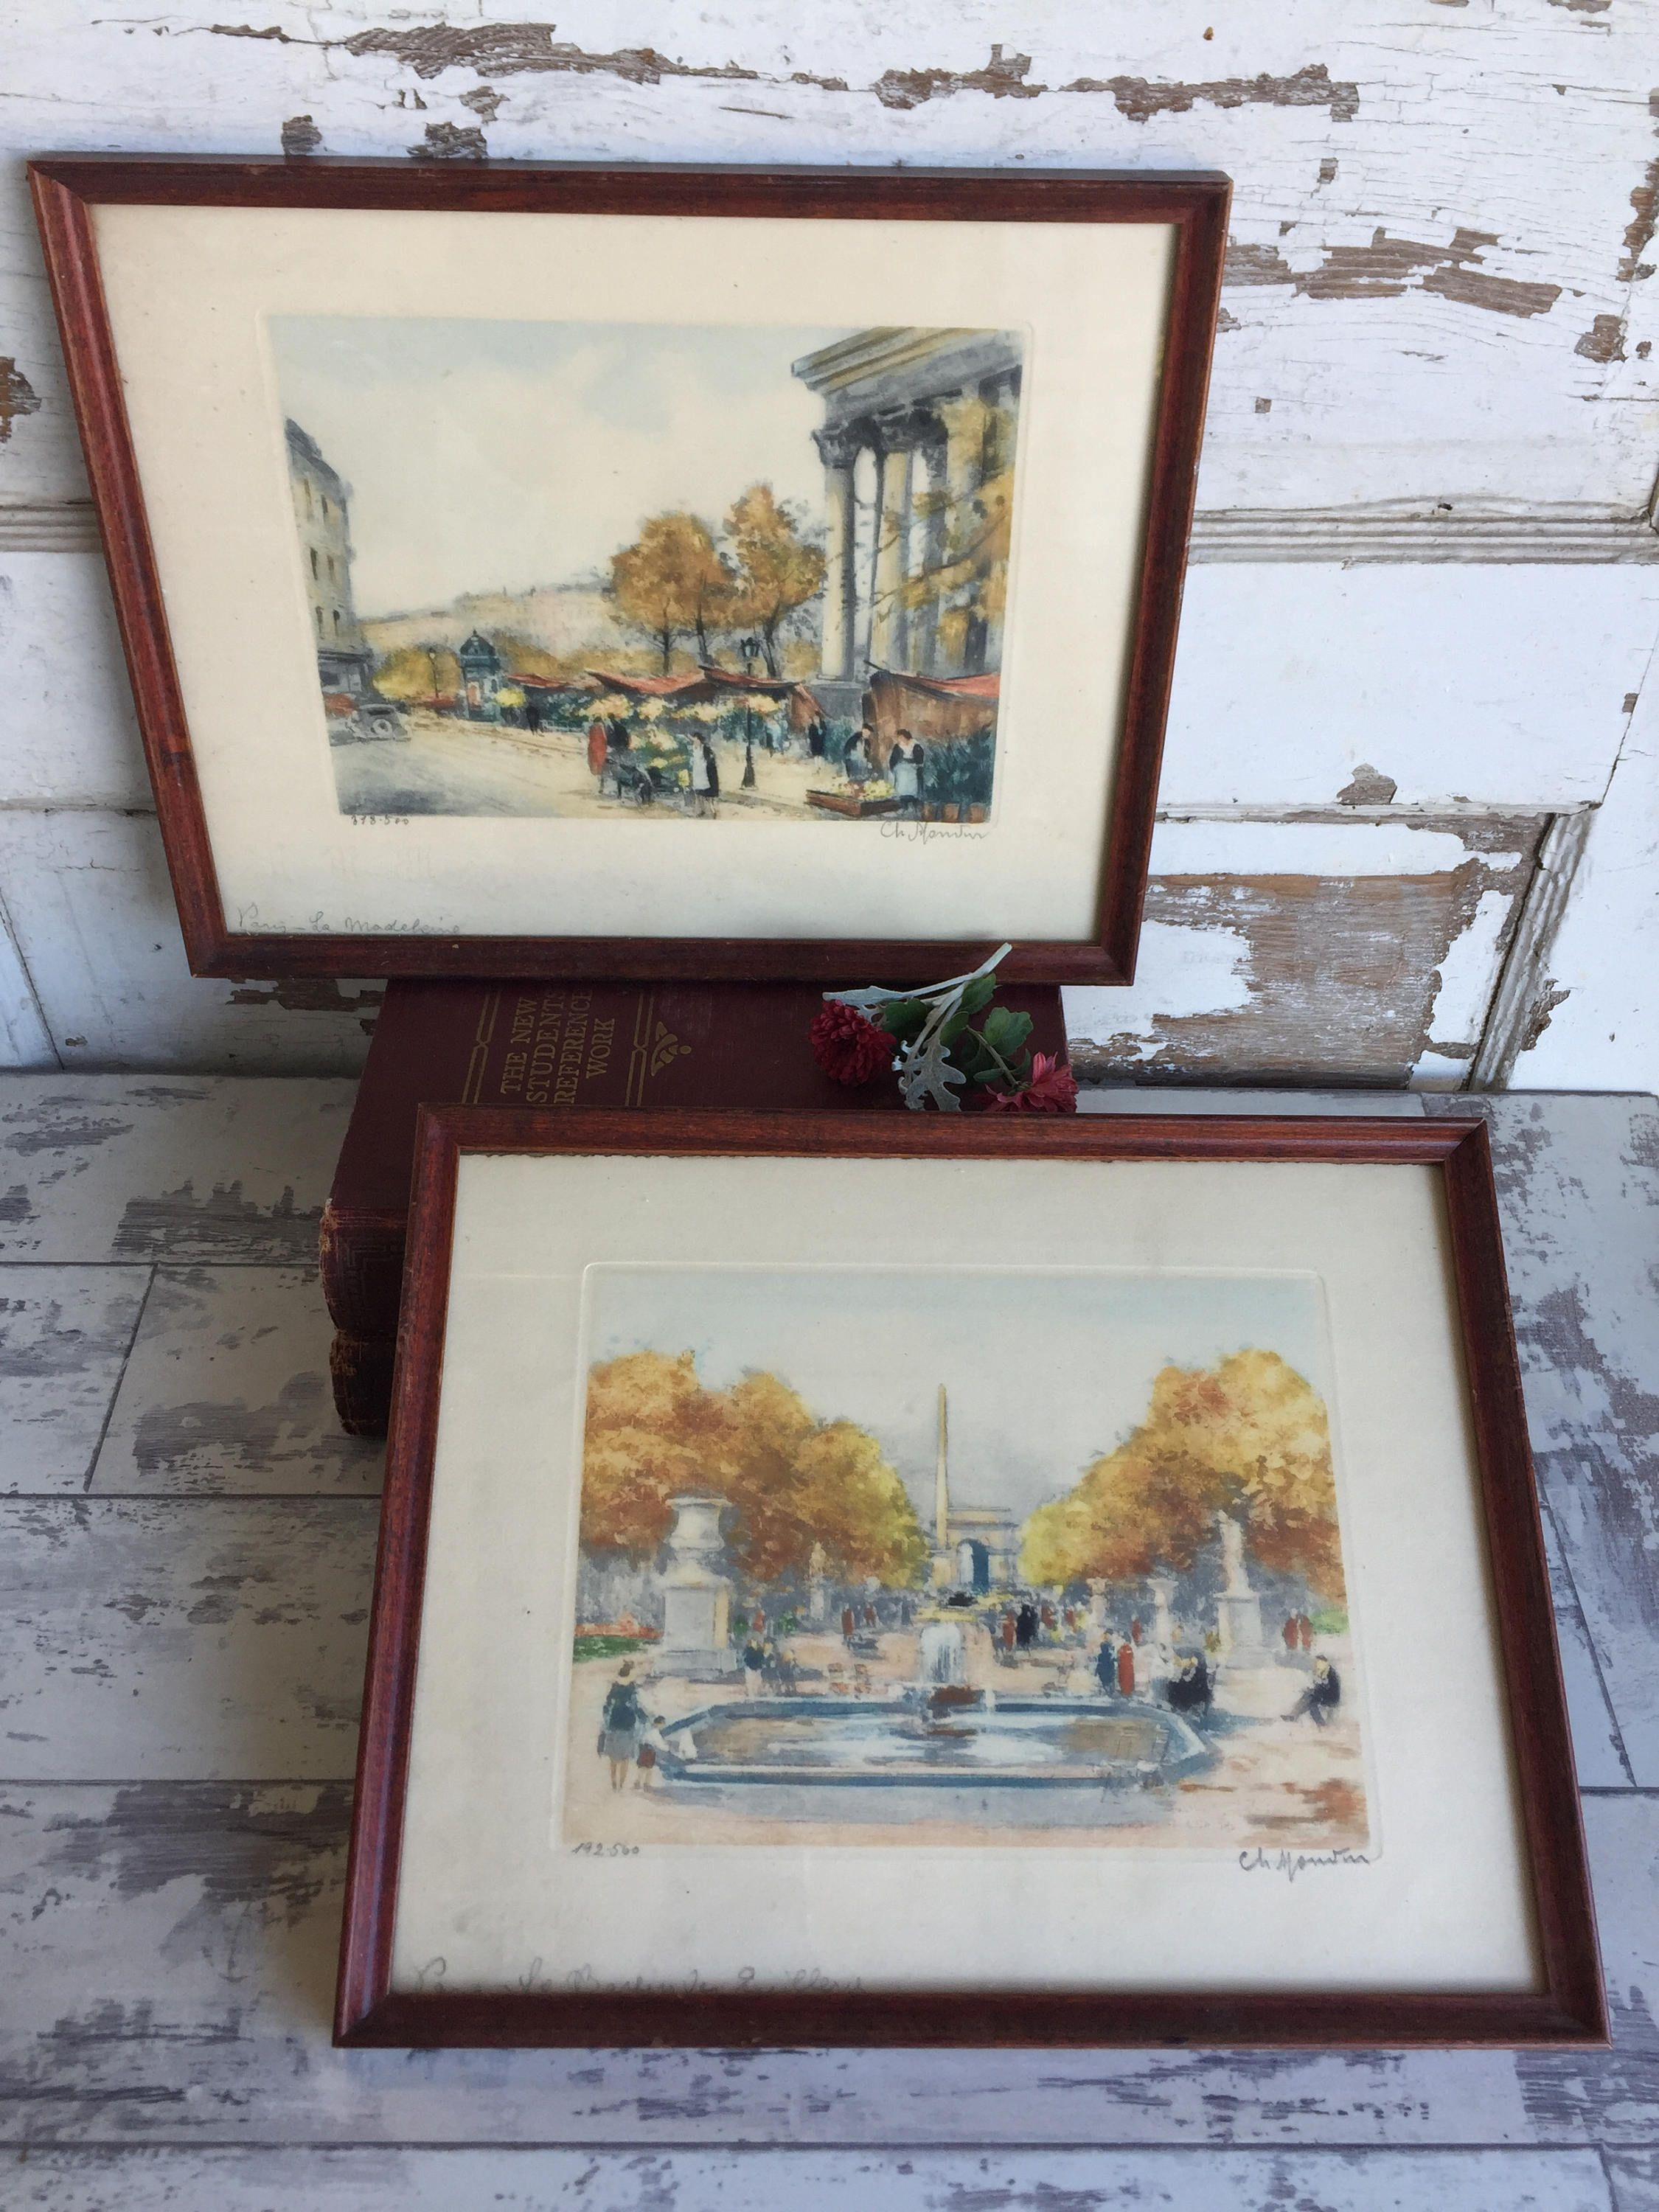 Vintage Engraving Prints French Scenes Limited Edition Signed Colored Framed